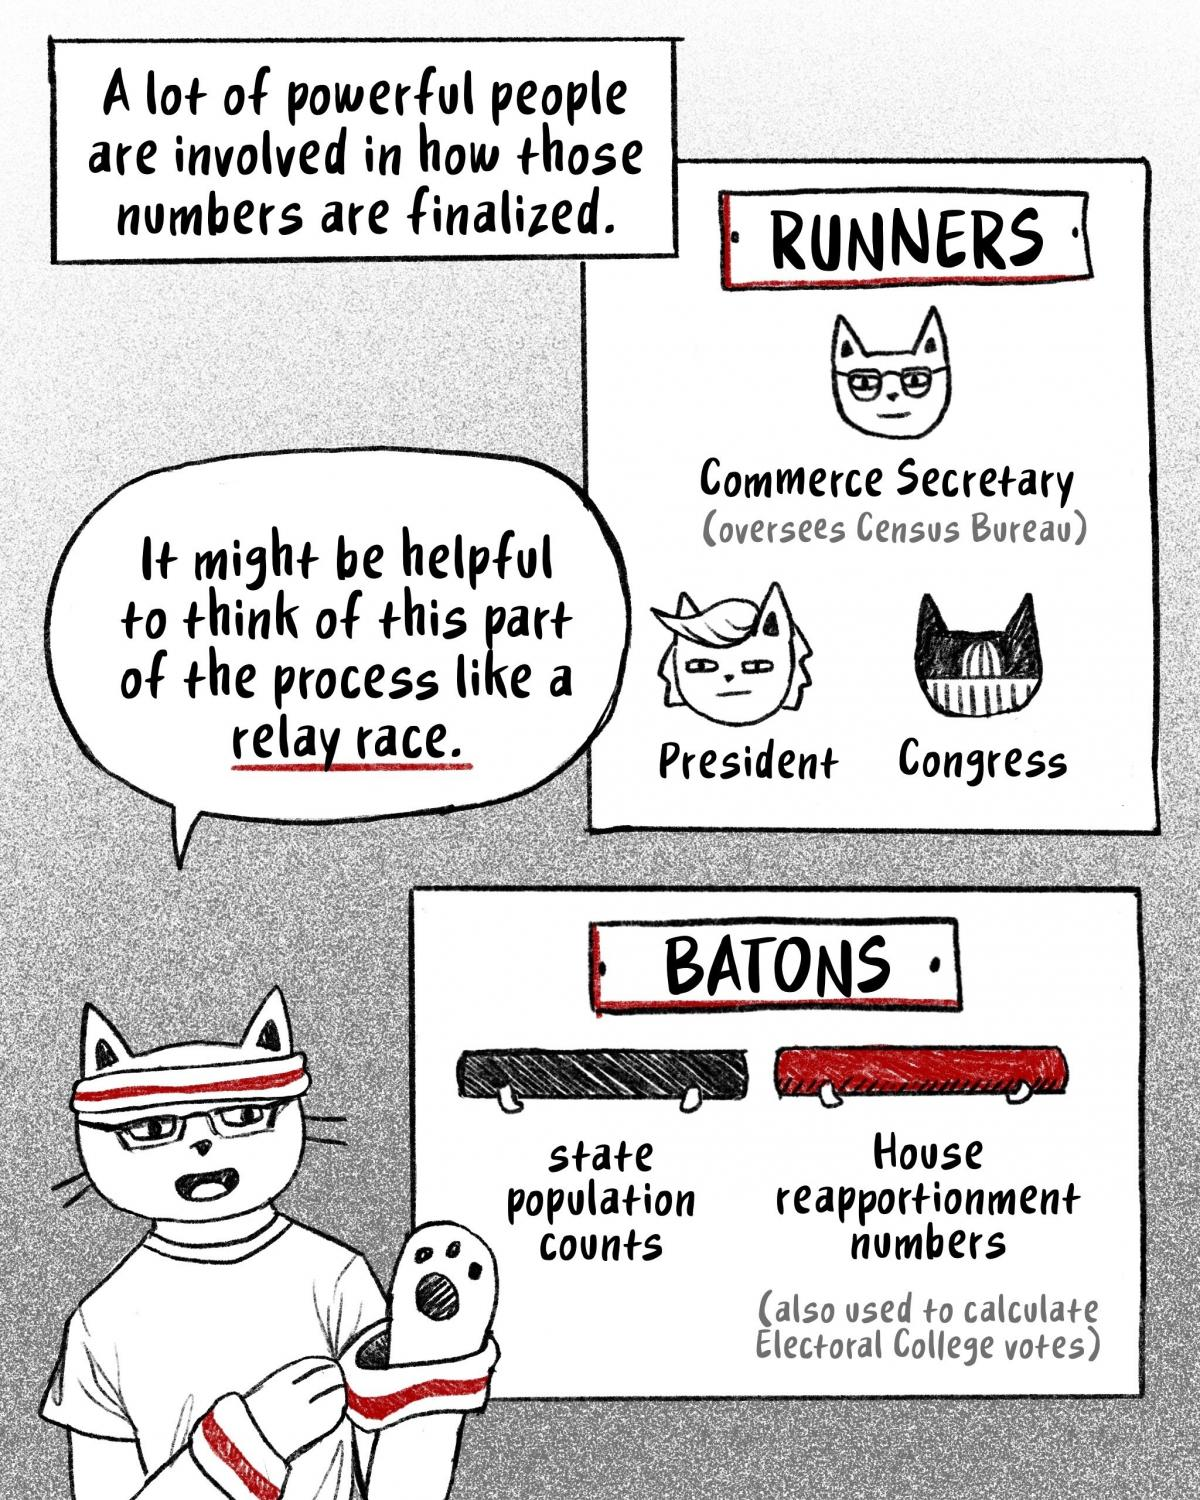 Think of the process as a relay race. The runners are the commerce secretary (who oversees the Census Bureau), the president and Congress. The batons are state population counts and House reapportionment numbers. [Image description- Hansi puts on an exerc